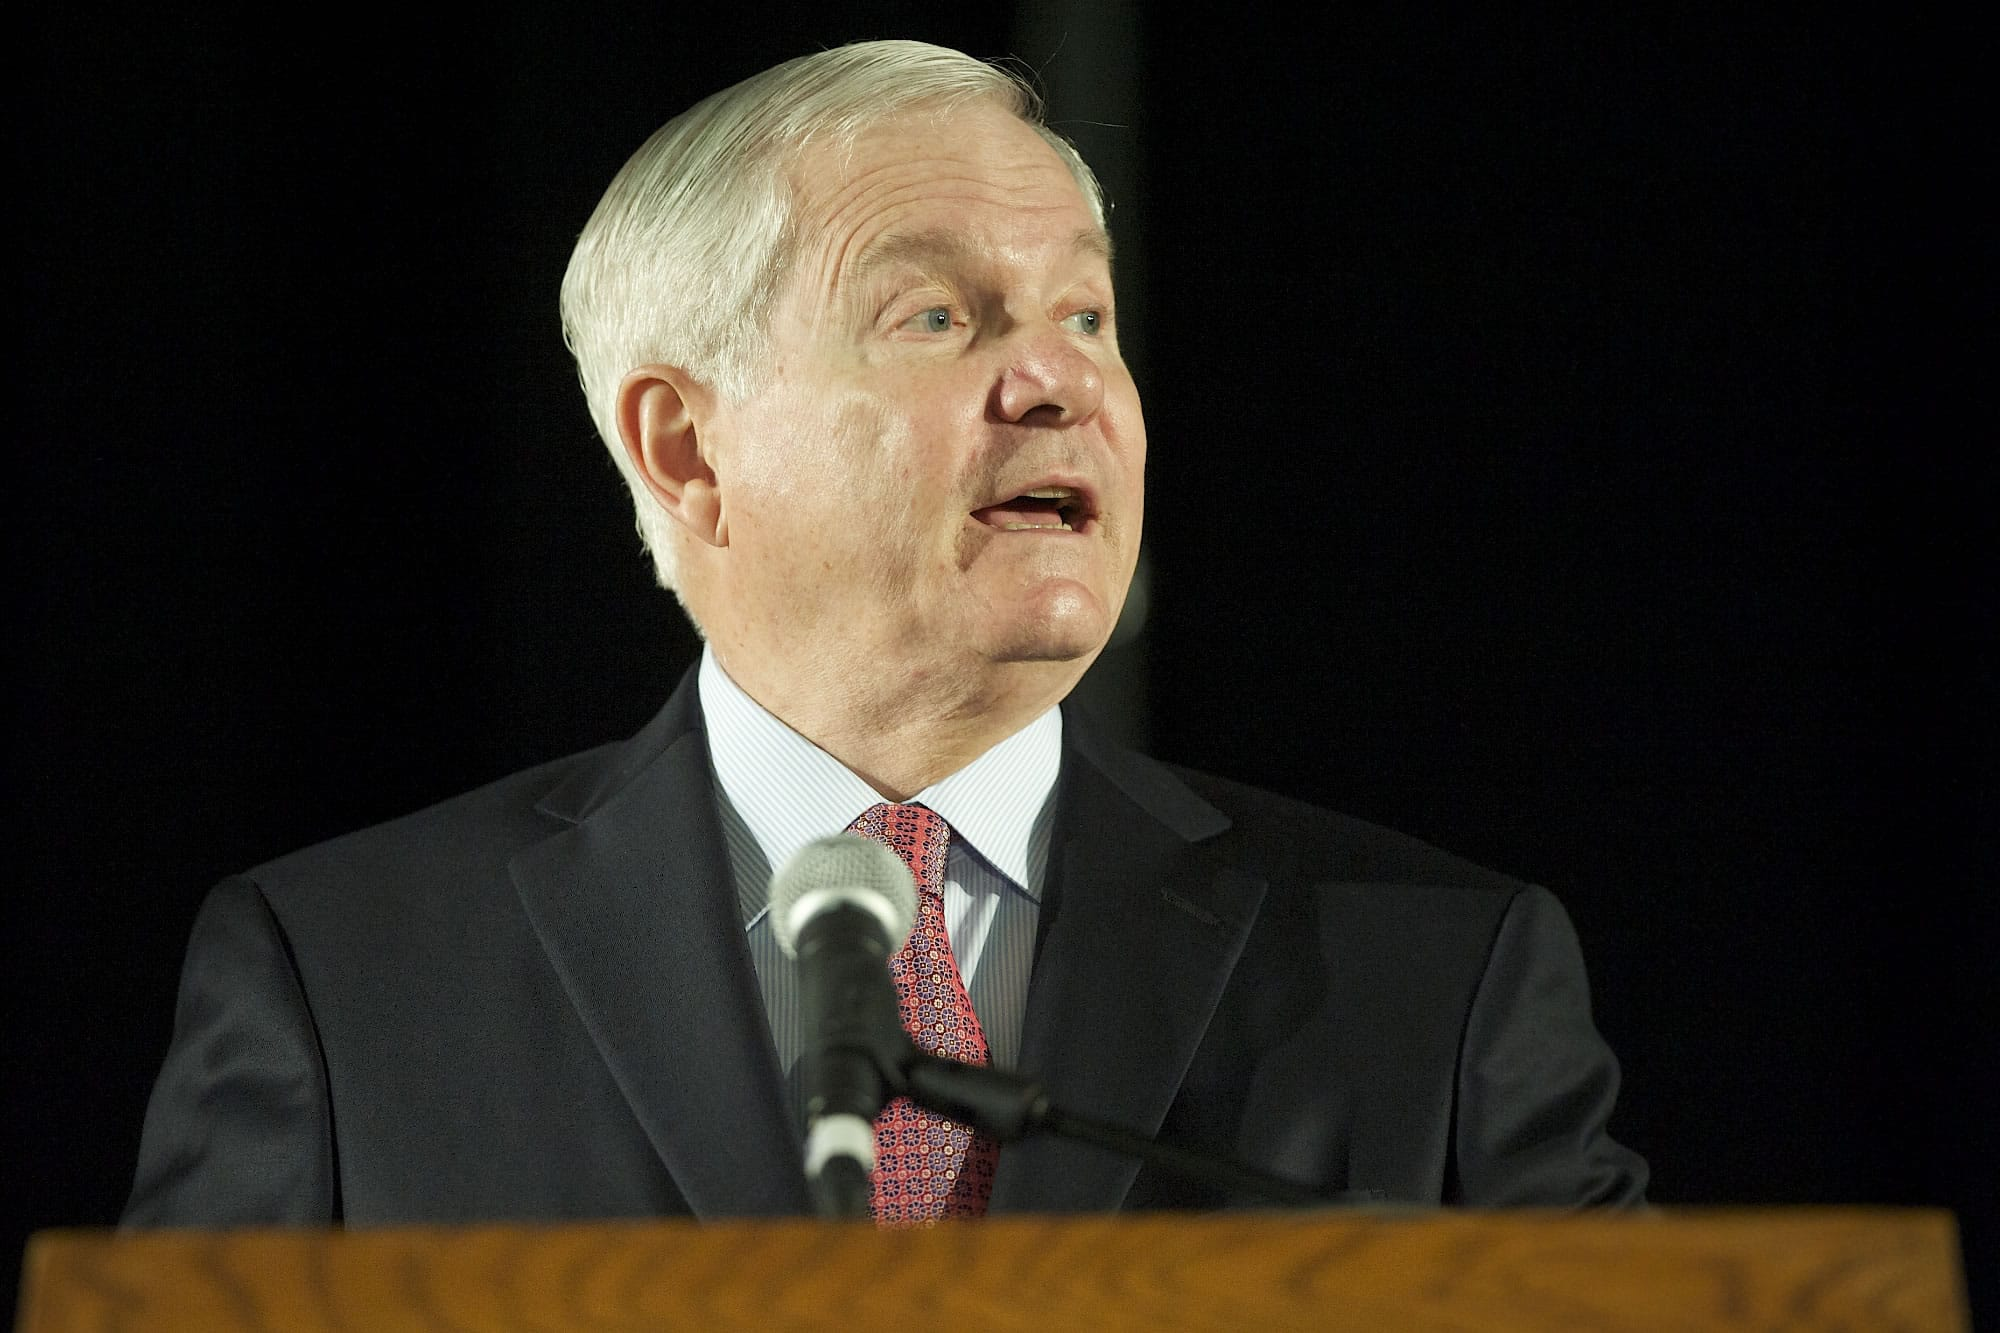 """Robert Gates tells local students that there is a place for teamwork, but at some point, """"You will be called upon to stand alone and do what's right."""""""